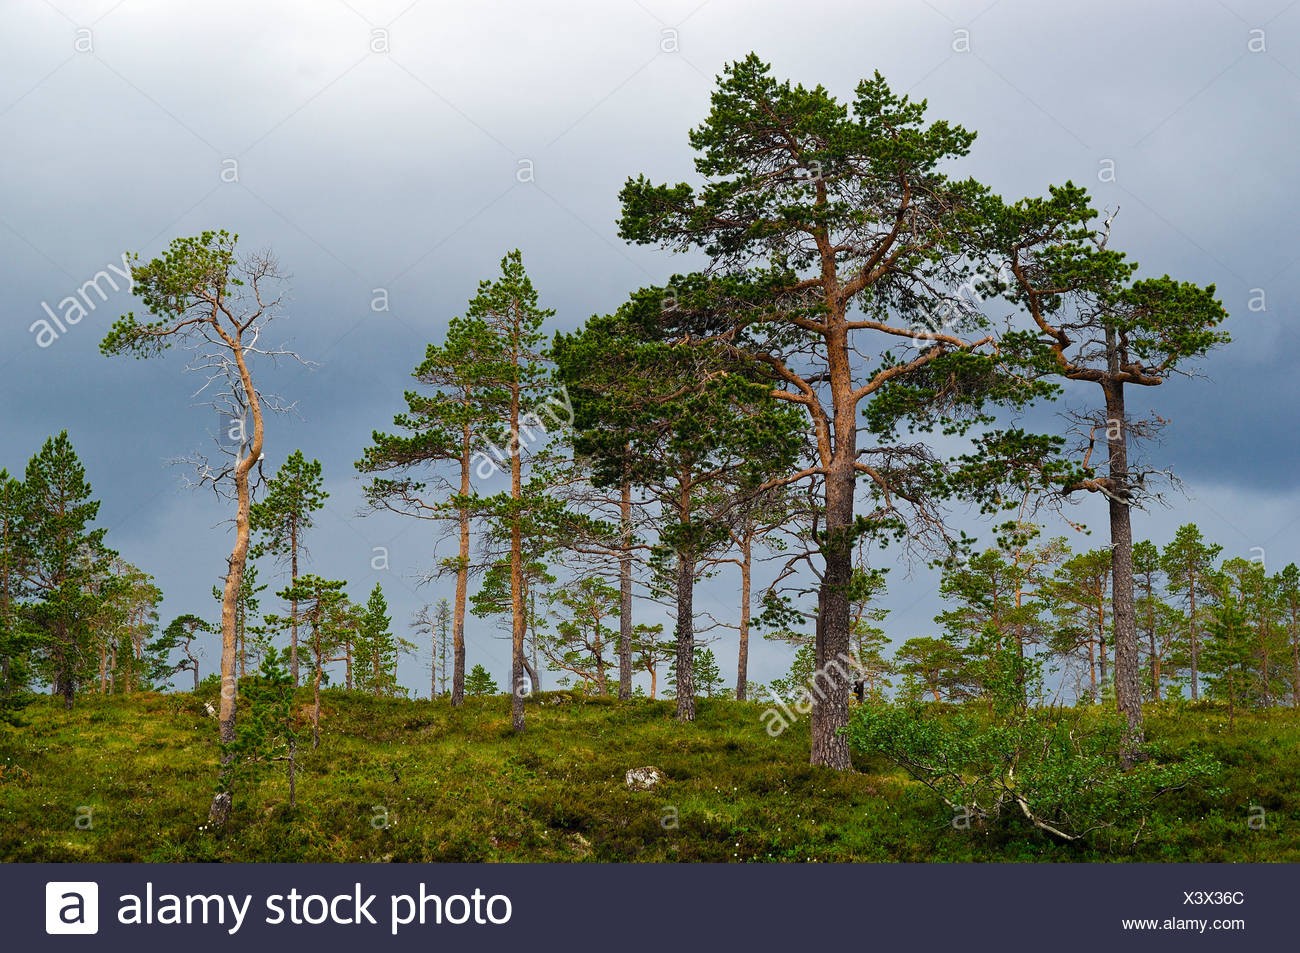 Pine, conifer, oppland, Norway - Stock Image